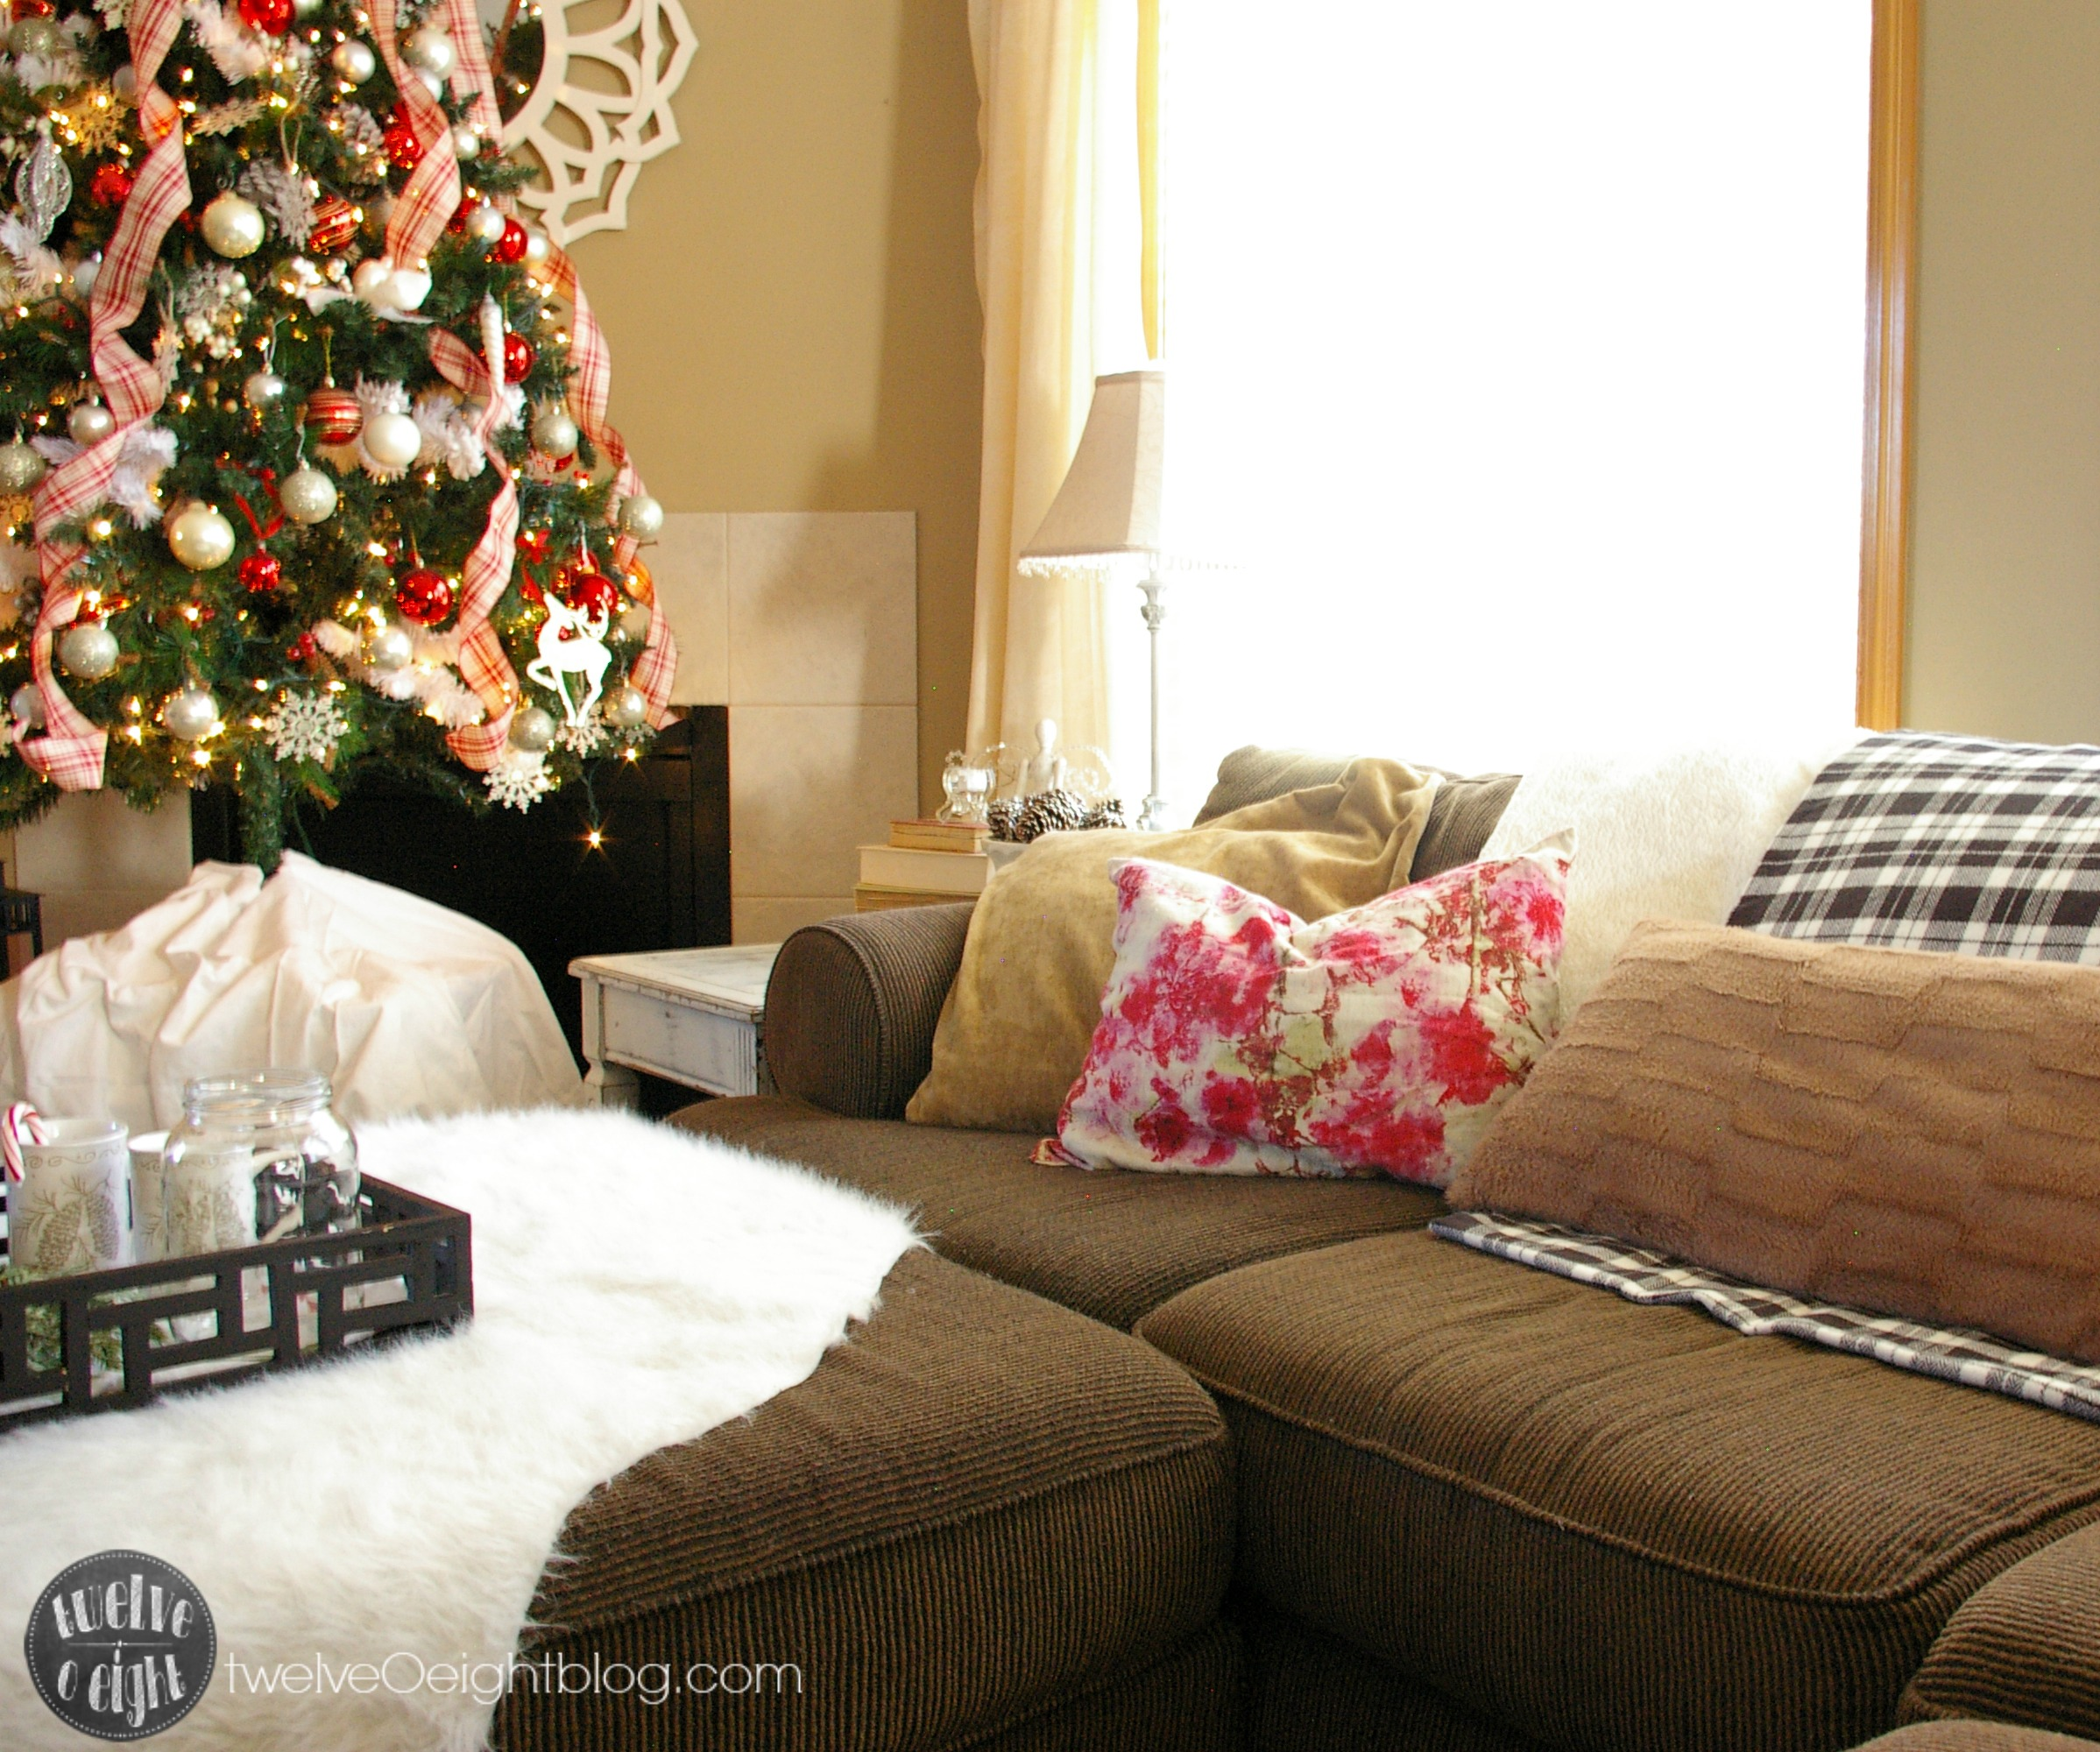 Our Diy House 2014 Home Tour: Mini Christmas Home Tour + The Best Christmas Memories…